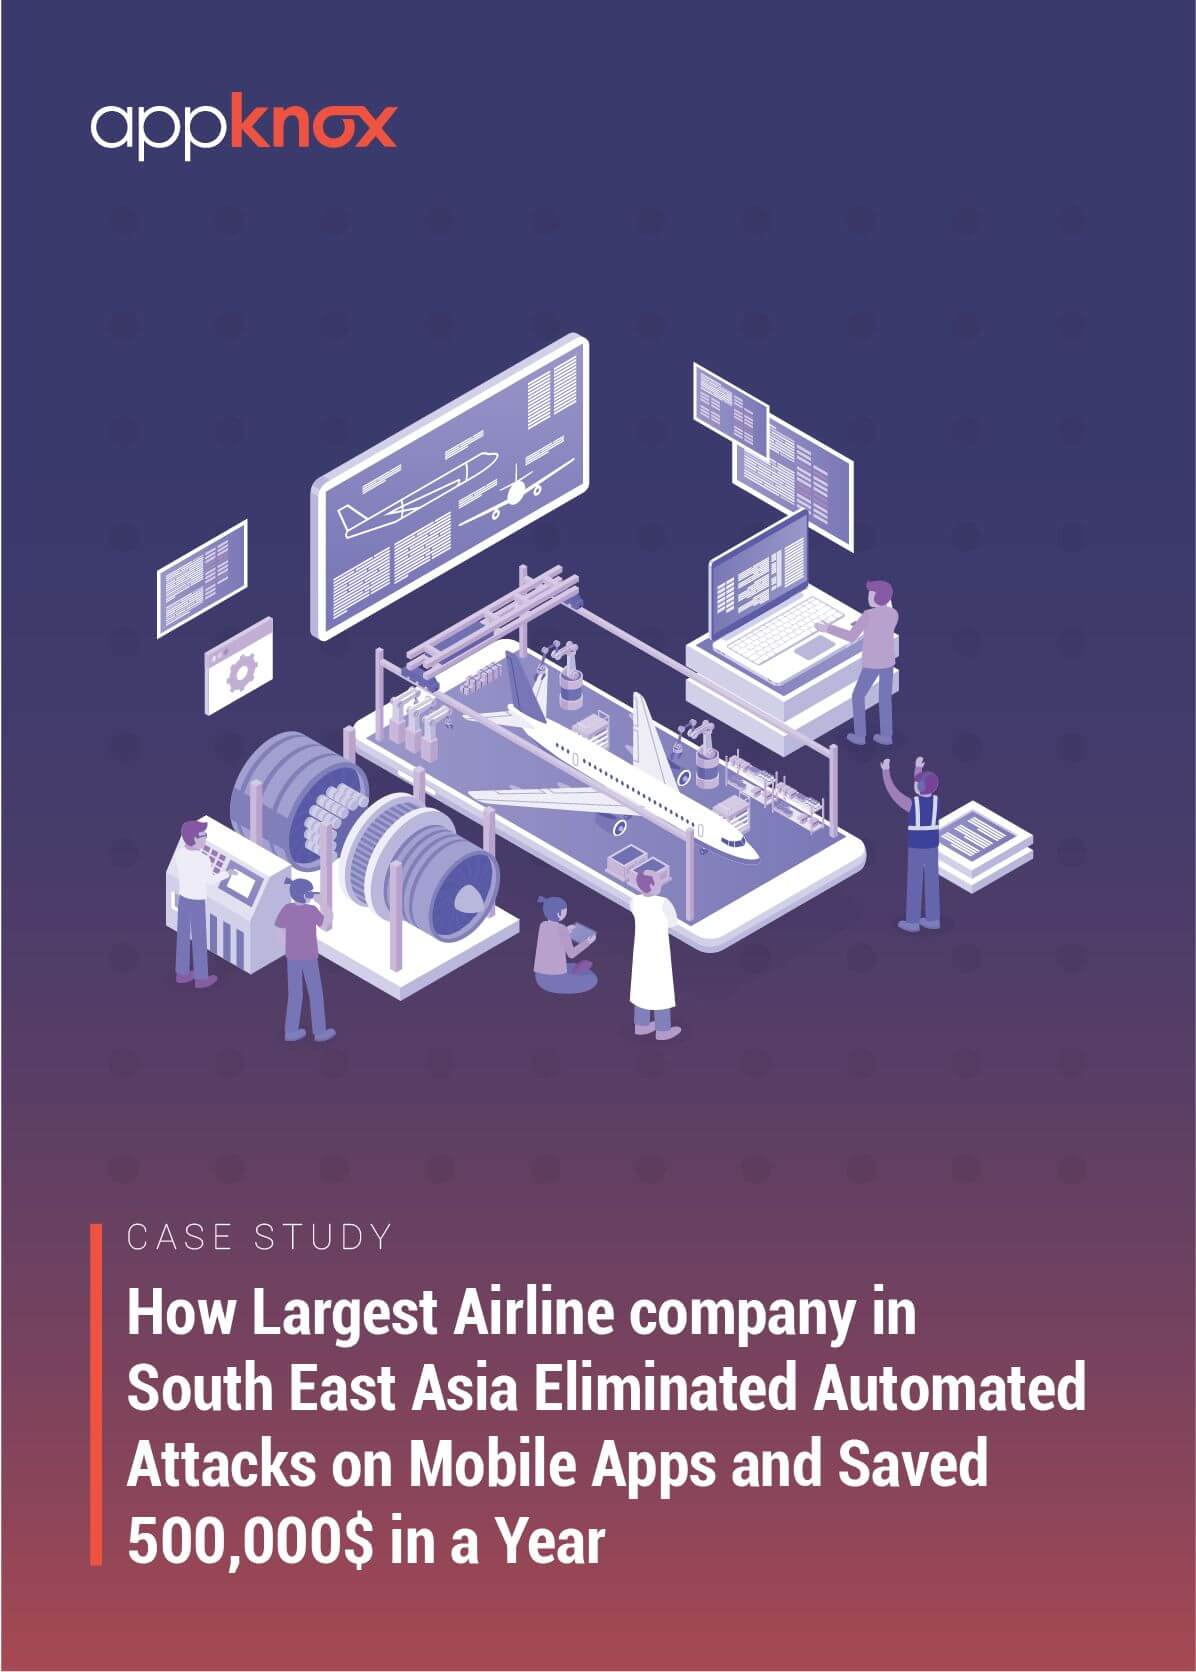 How One of the Largest Airlines Eliminated Automated Attacks on Mobile Apps